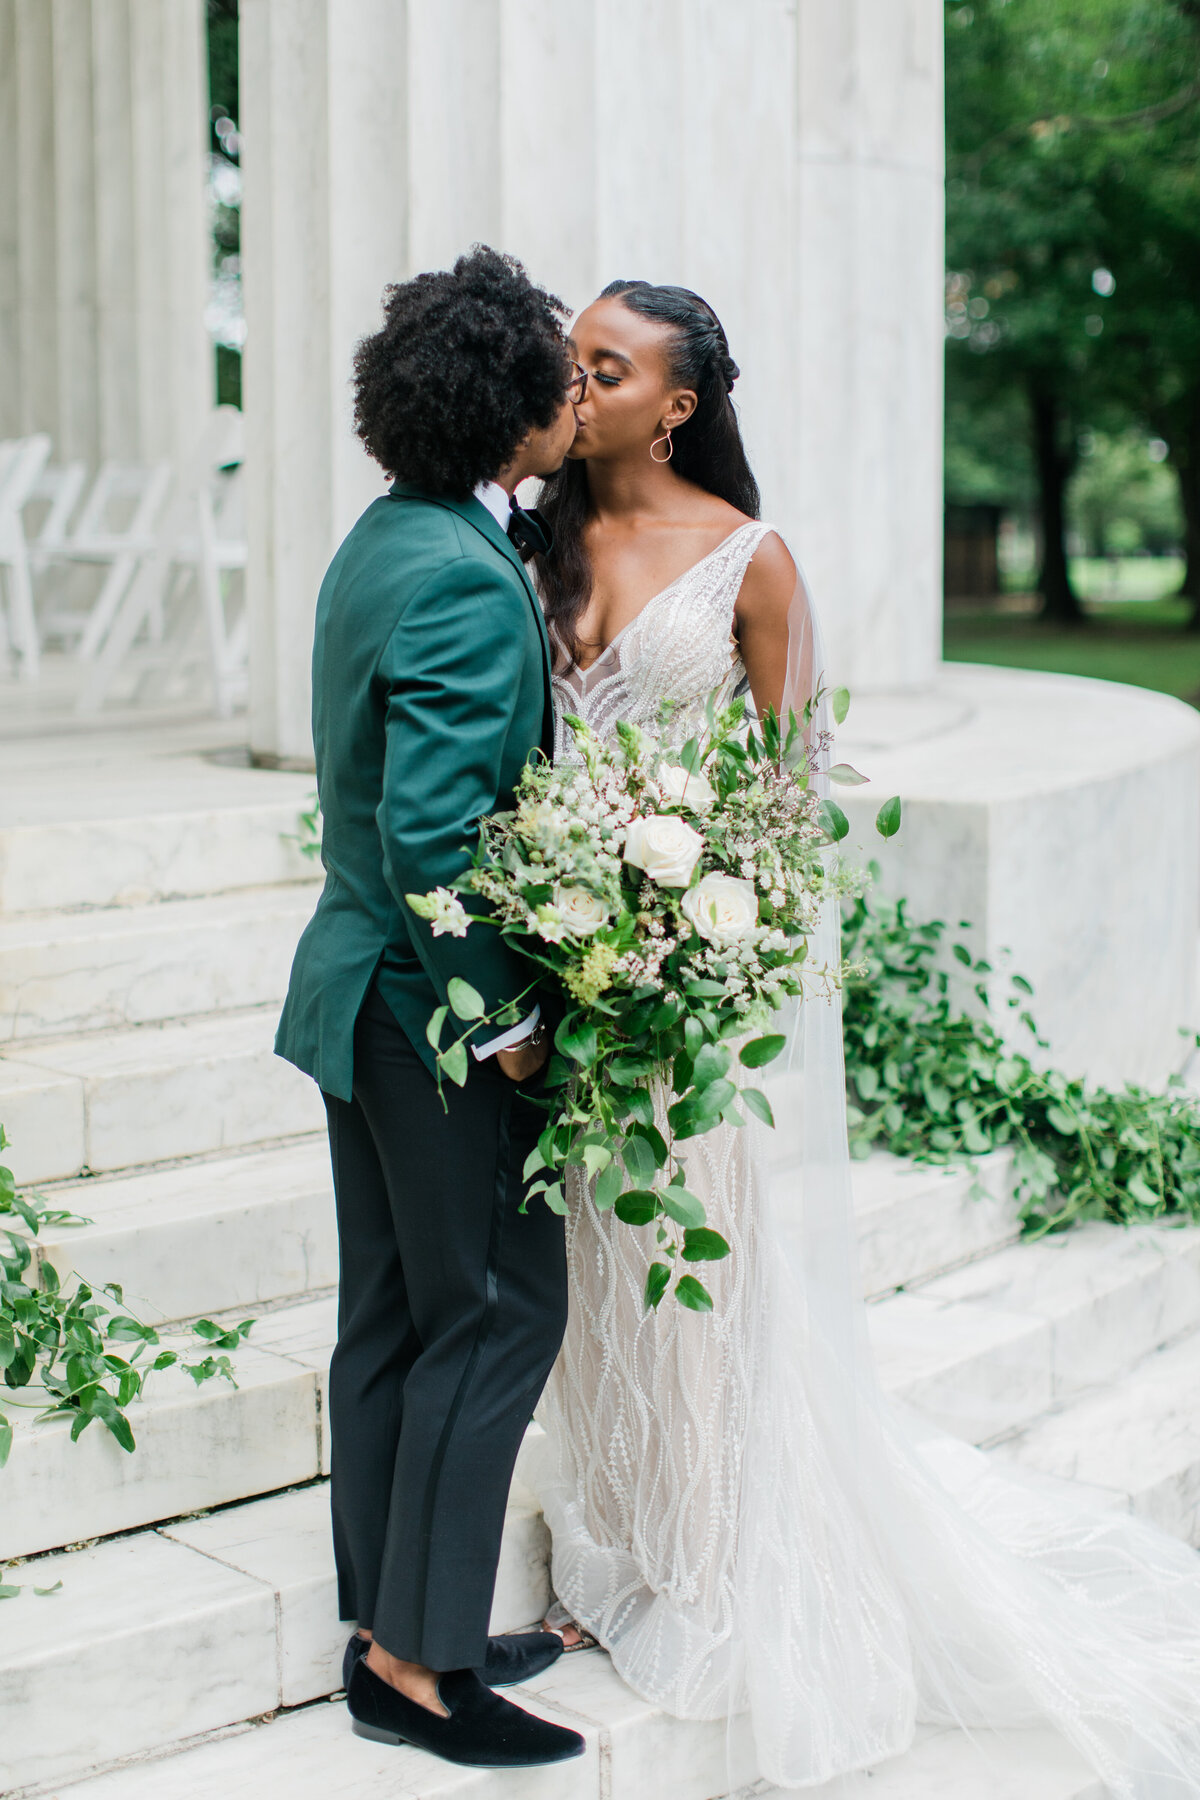 Solomon_Tkeyah_Micro_COVID_Wedding_Washington_DC_War_Memorial_MLK_Memorial_Linoln_Memorial_Angelika_Johns_Photography-4593